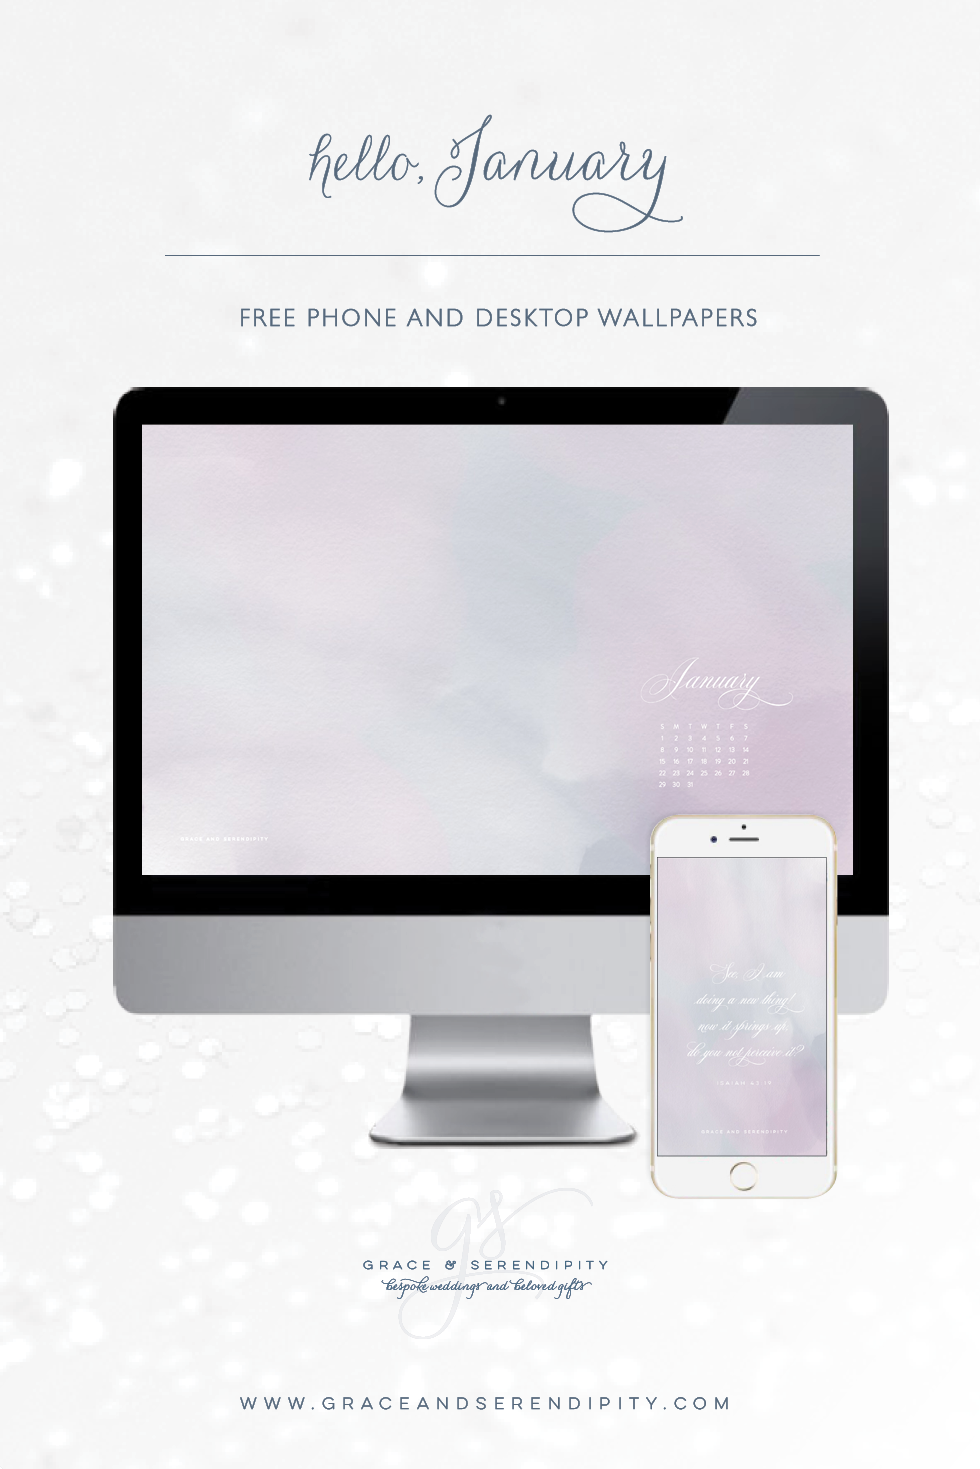 Free January Desktop and Phone Downloads by Grace and Serendipity